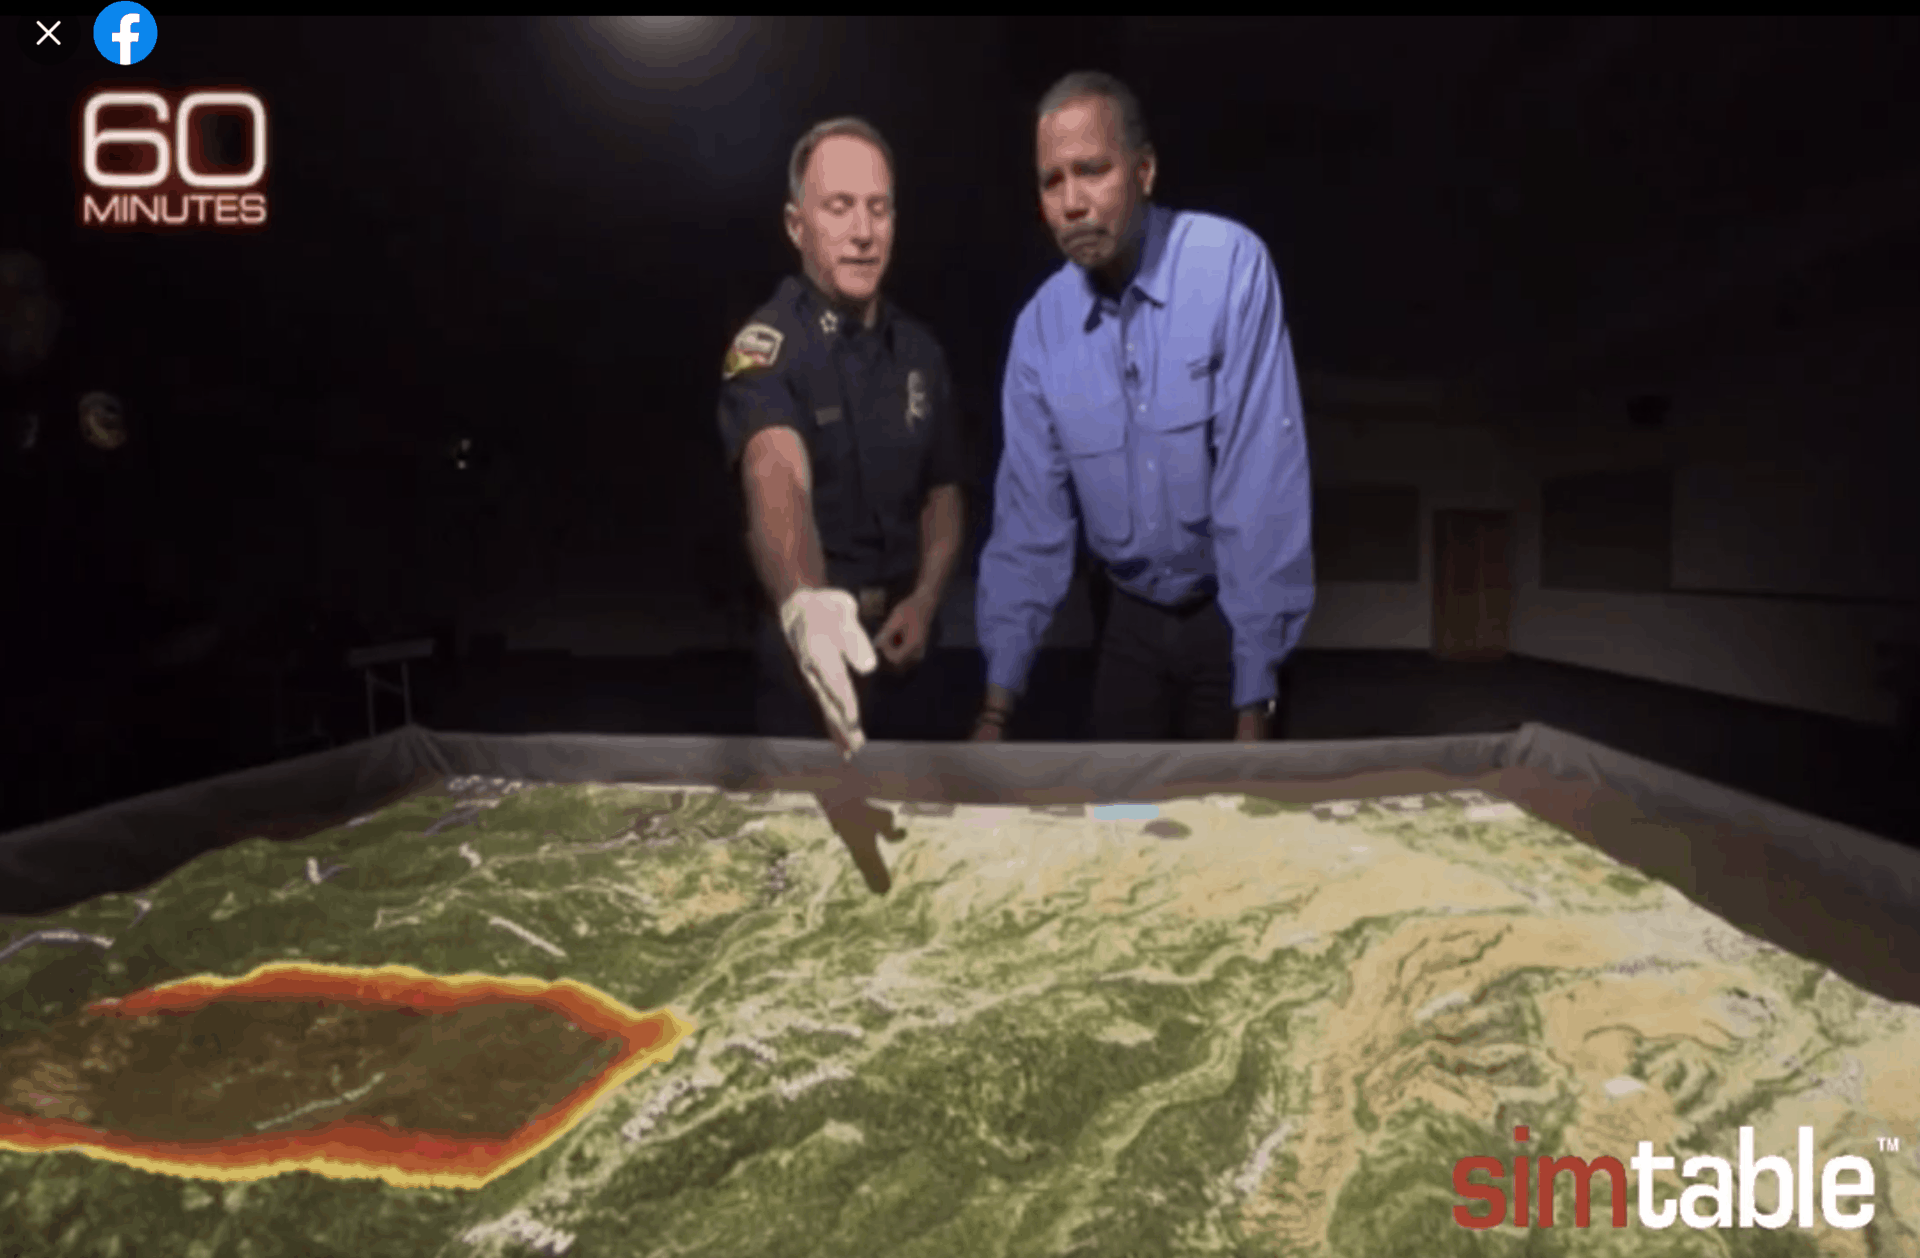 A man in uniform points out a spot on a sand table simulation to another man.